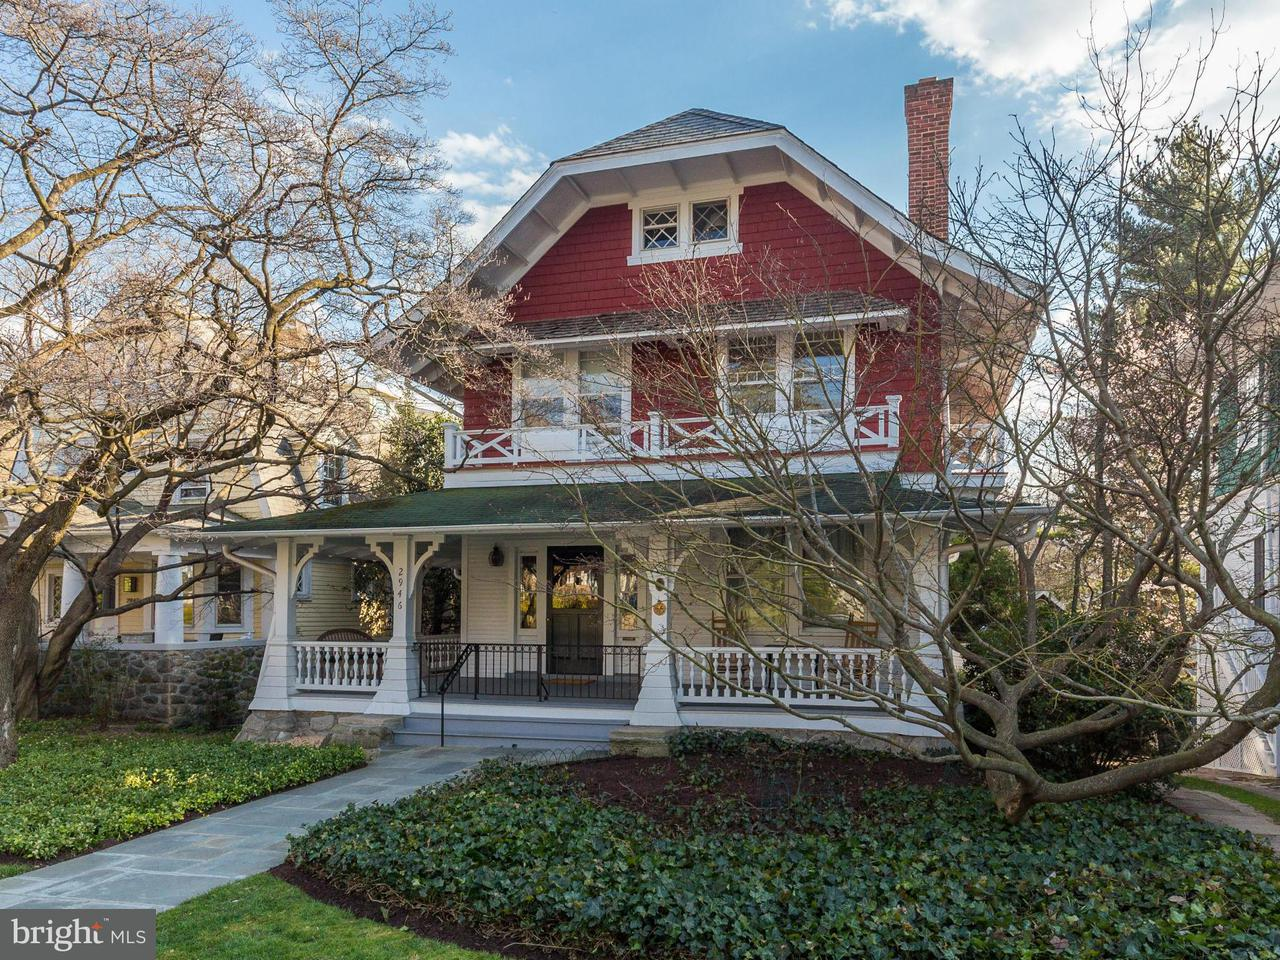 Single Family Home for Sale at 2946 NEWARK ST NW 2946 NEWARK ST NW Washington, District Of Columbia 20008 United States